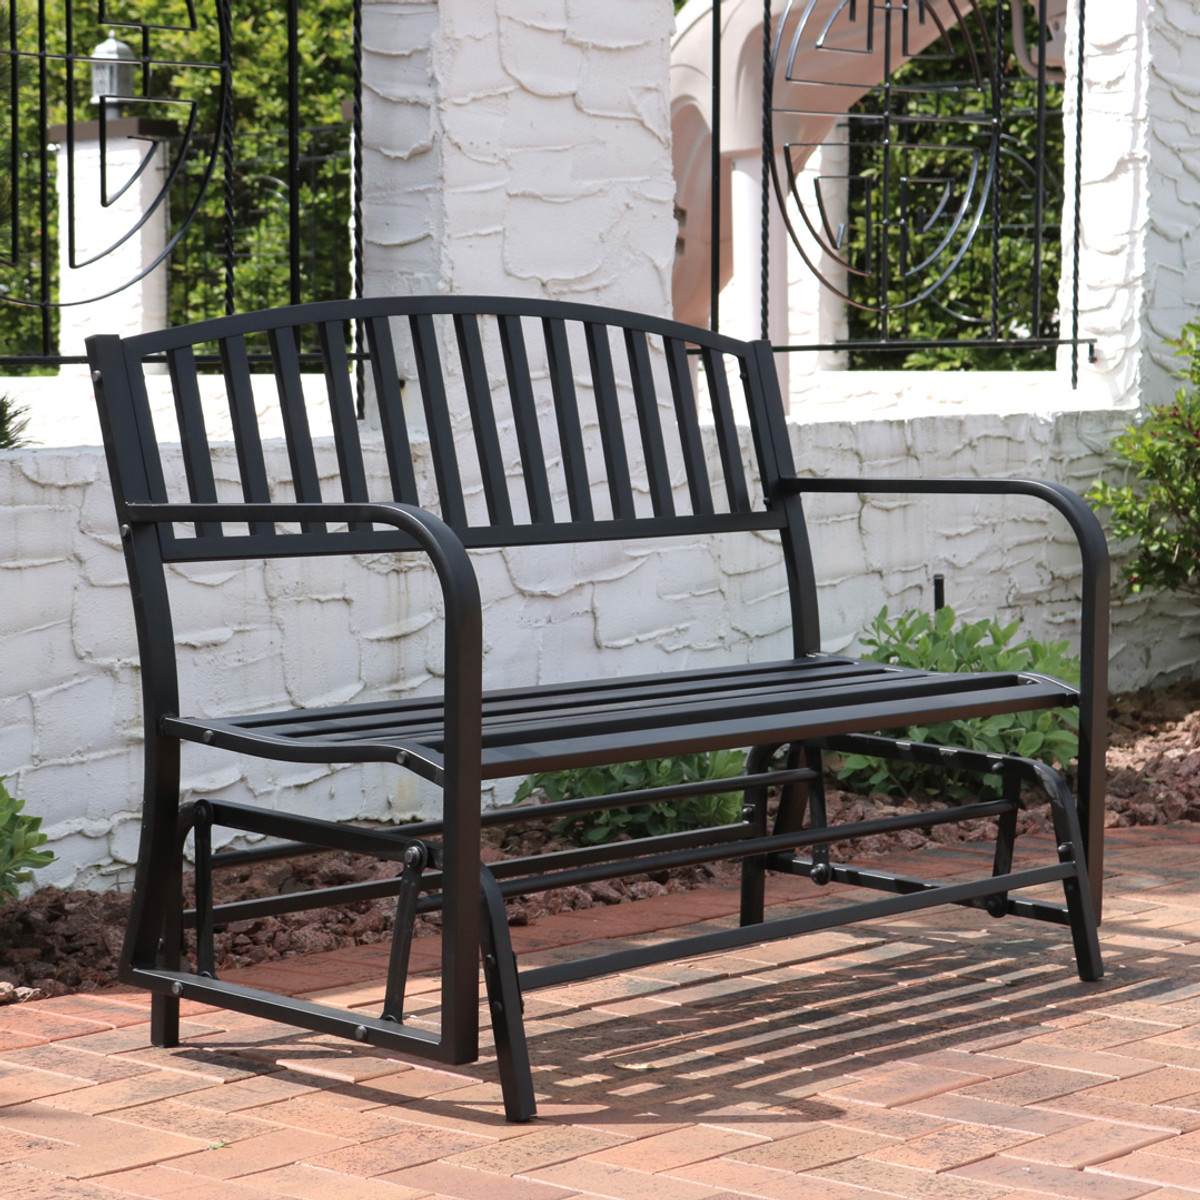 Groovy Sunnydaze Decor Black Steel Outdoor Patio Glider Bench Caraccident5 Cool Chair Designs And Ideas Caraccident5Info